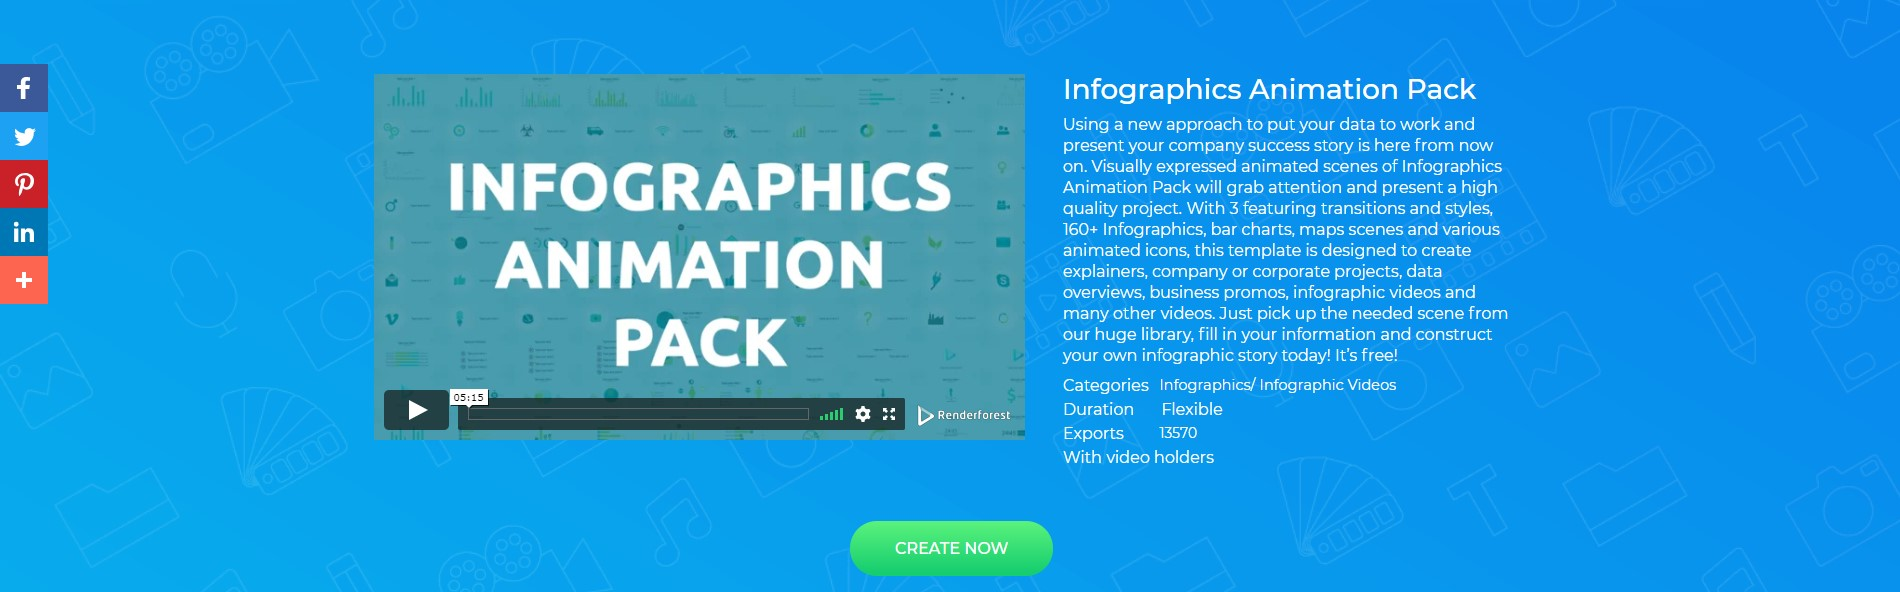 Infographics Animation Pack